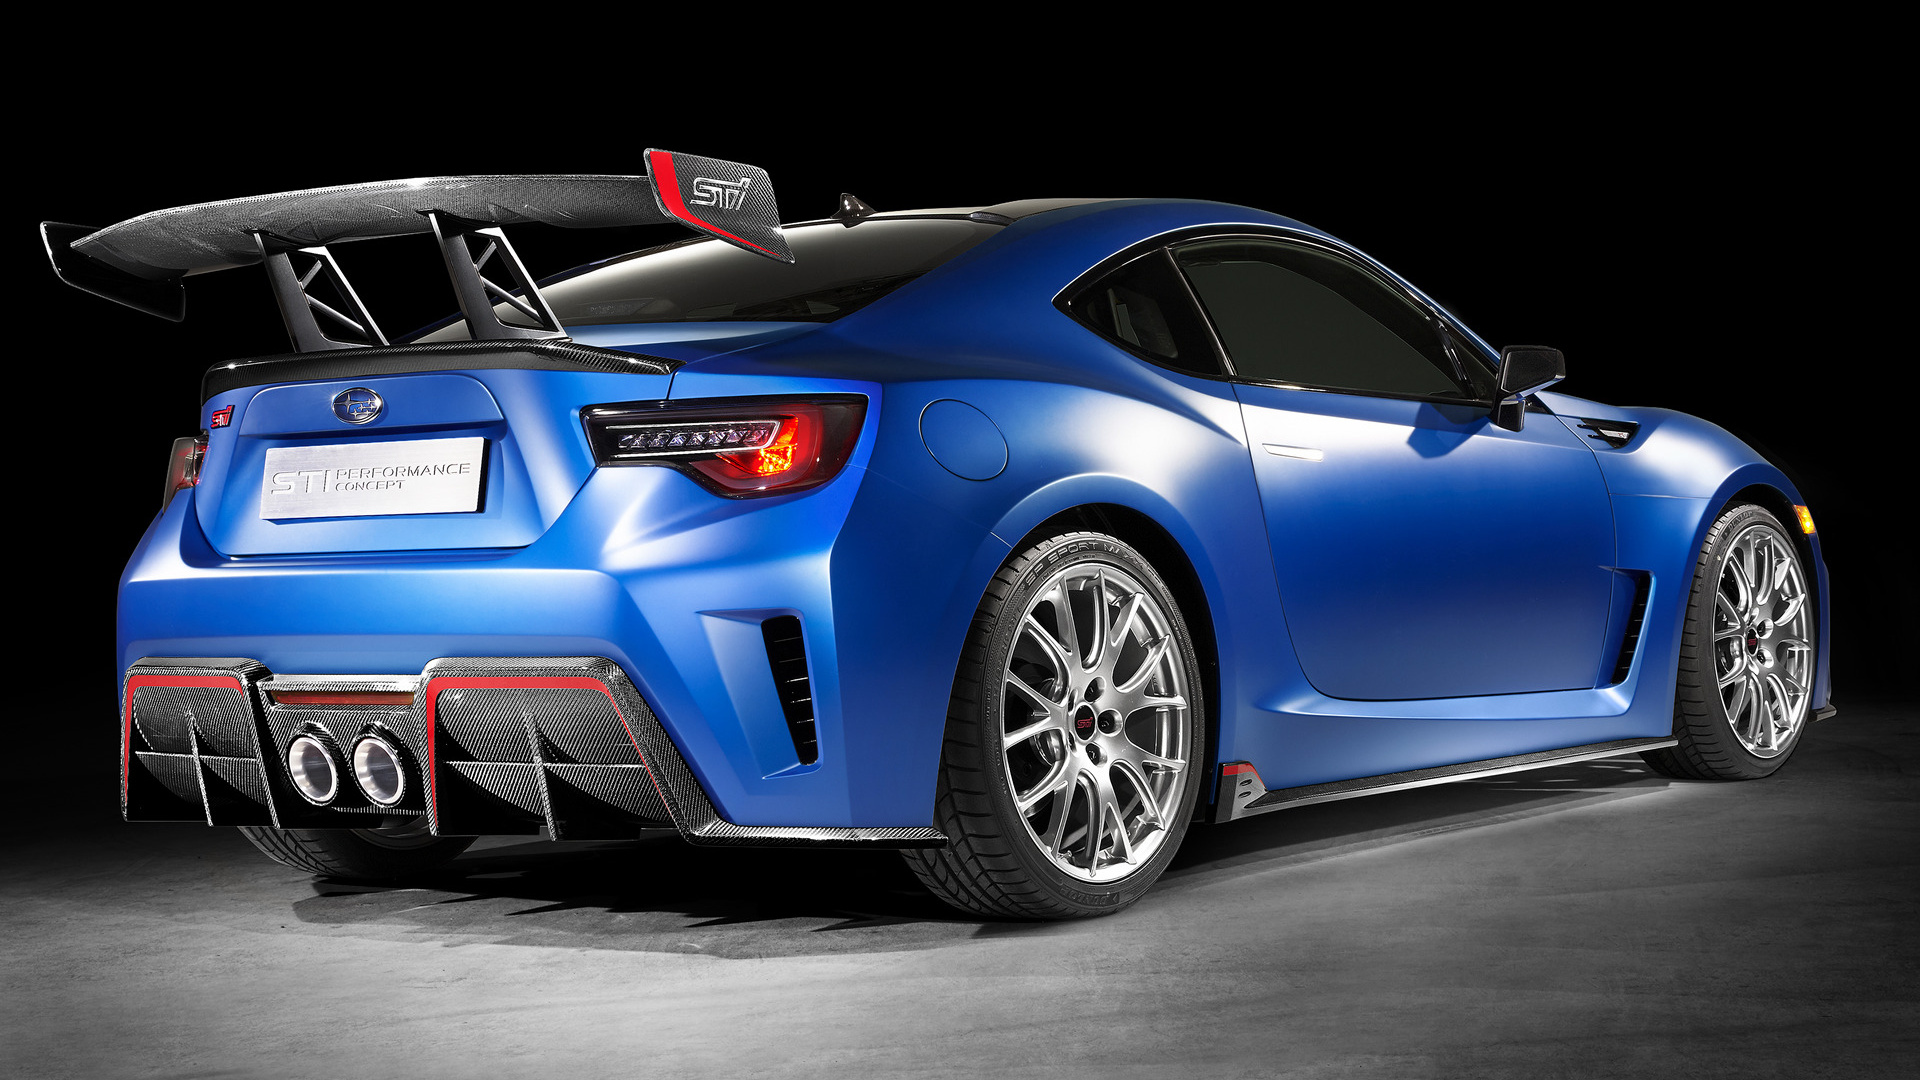 2015 Subaru Brz Sti Performance Concept Wallpapers And